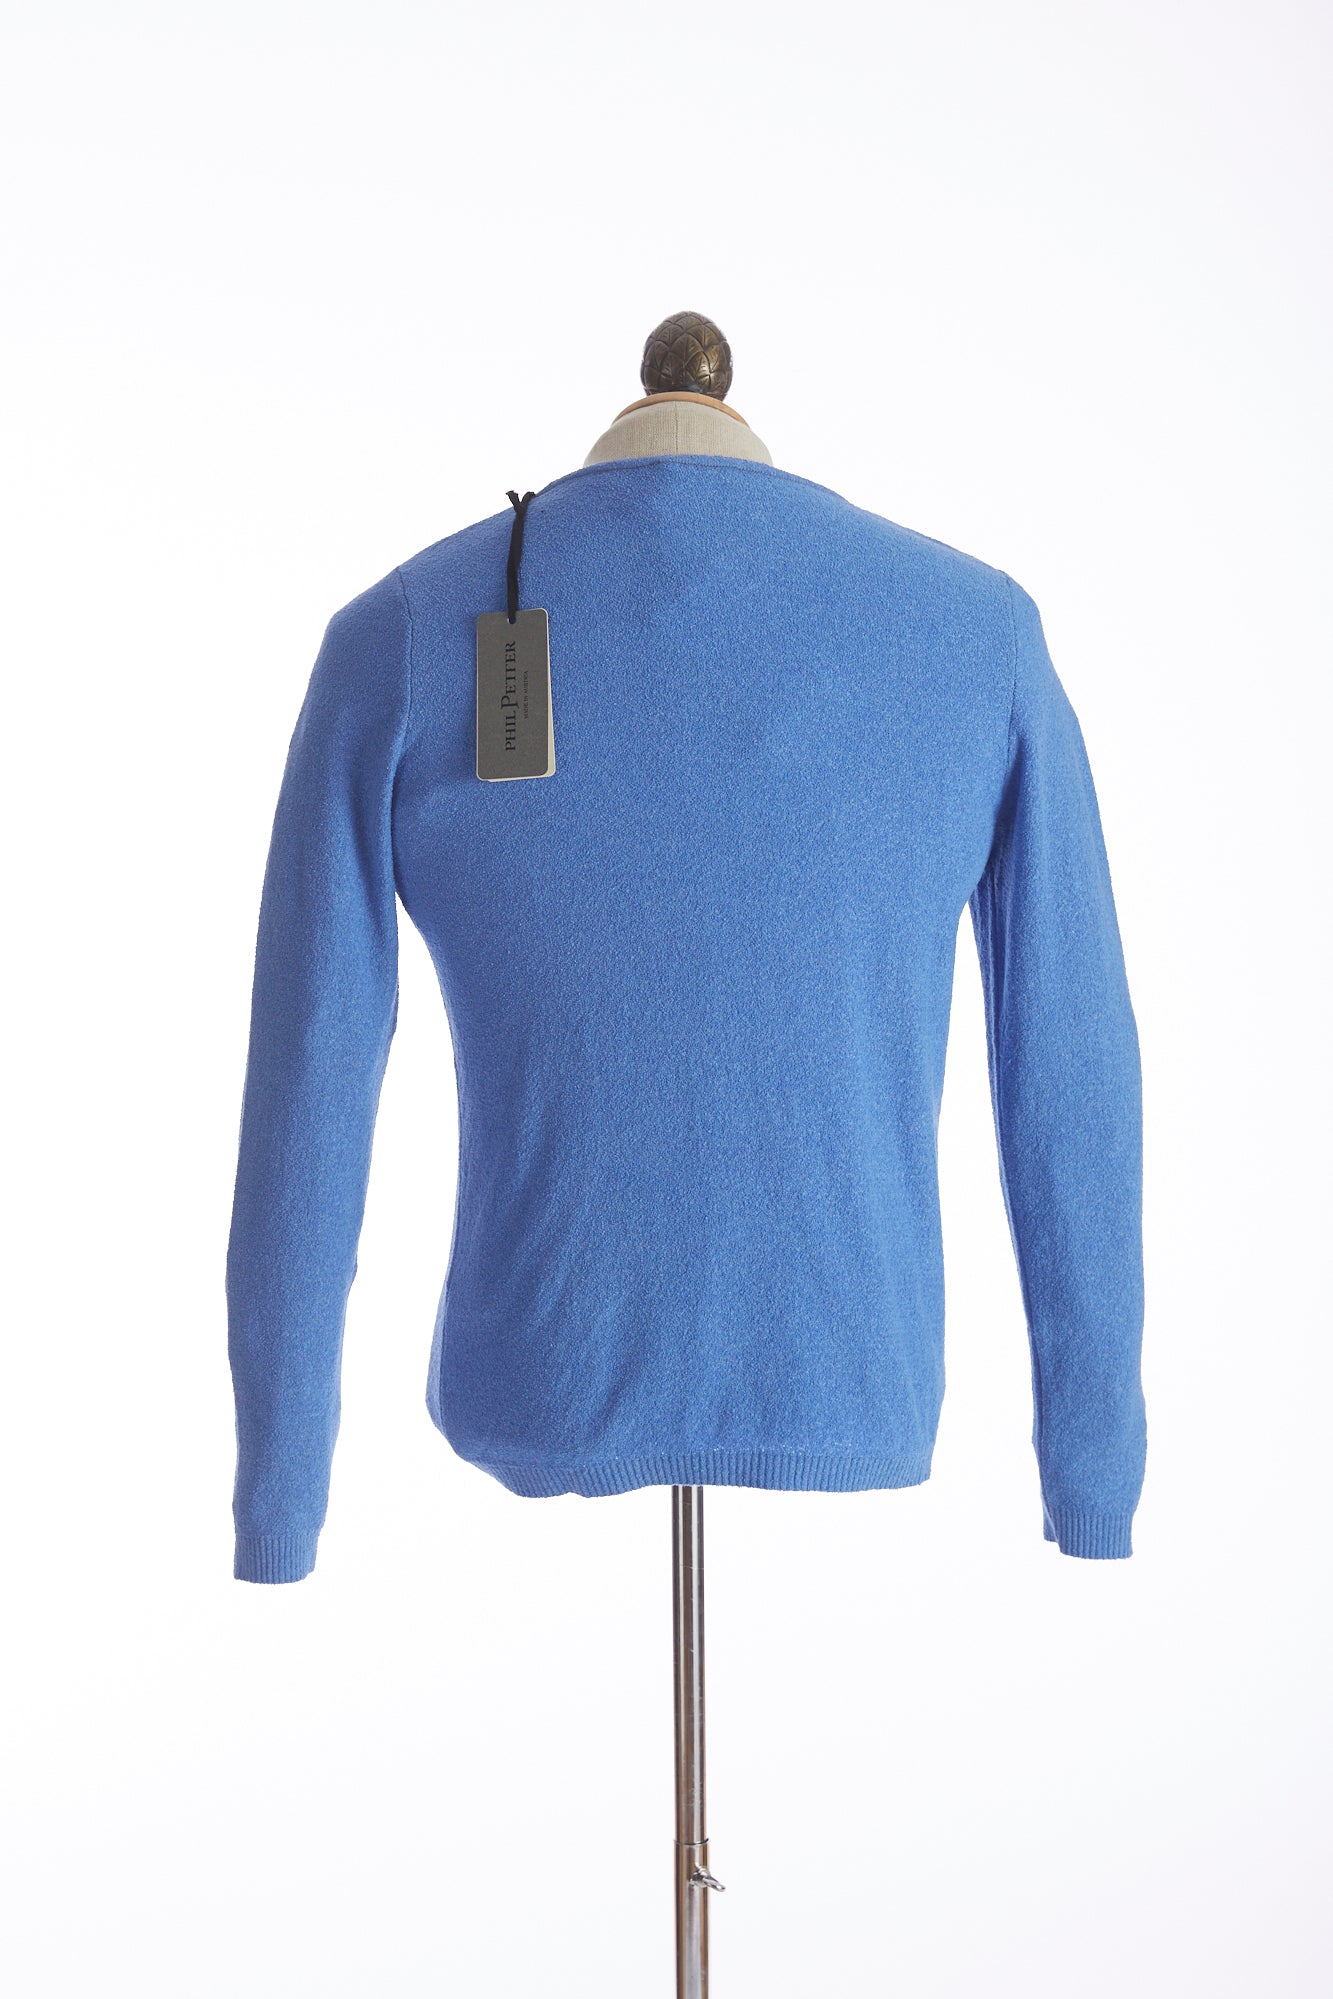 Phil Petter Baby Blue Terry Crewneck Sweater Back